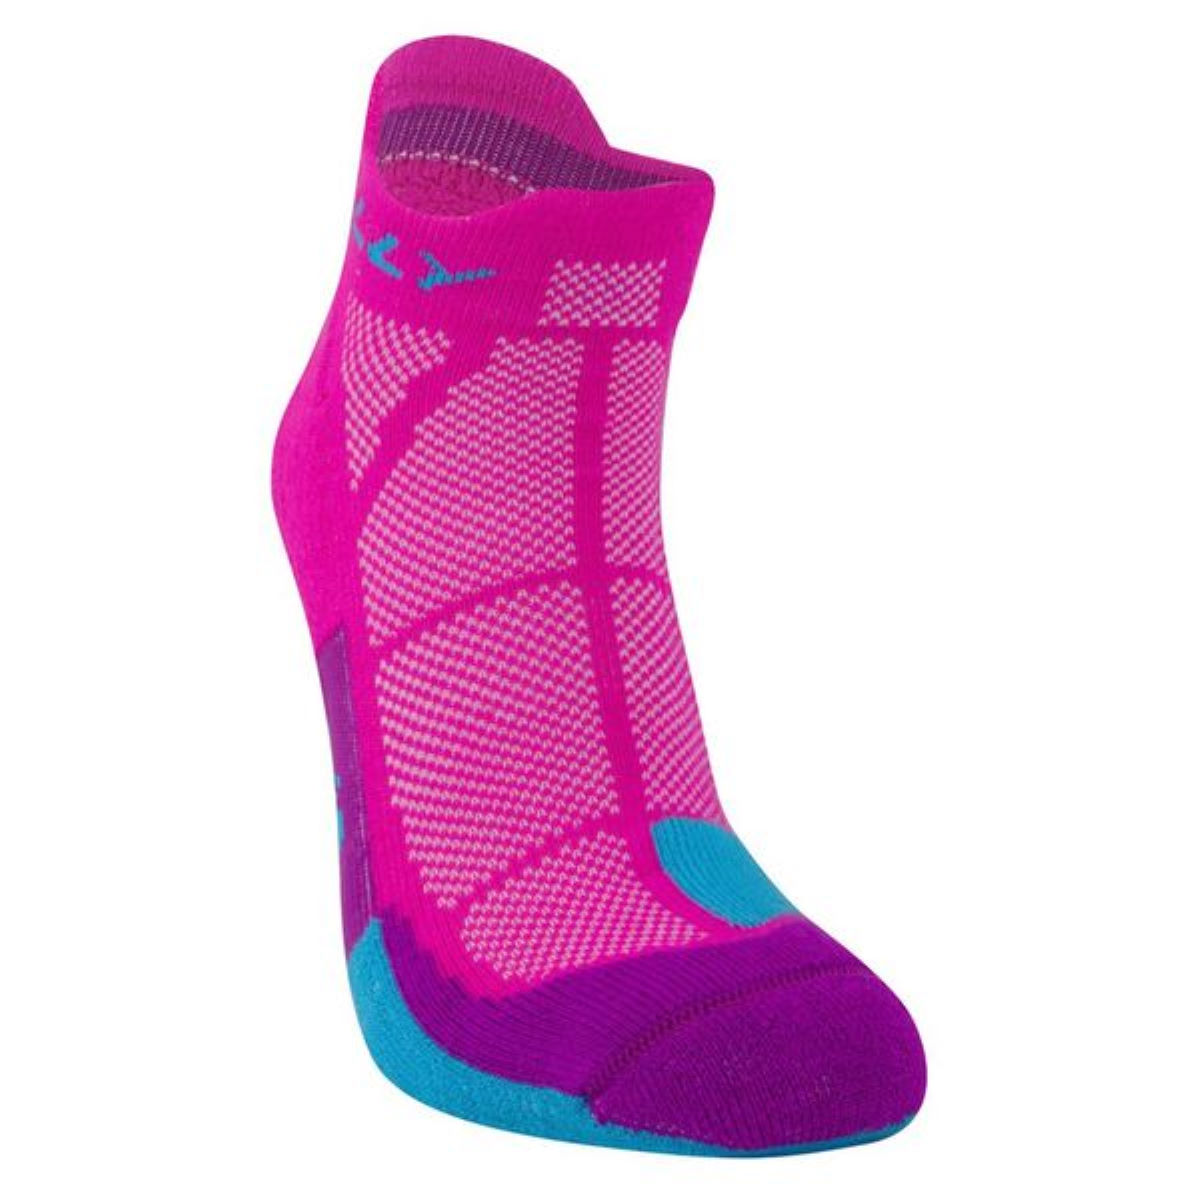 Socquettes Femme Hilly Cushion - S FPink/Blue/Thistle  Chaussettes